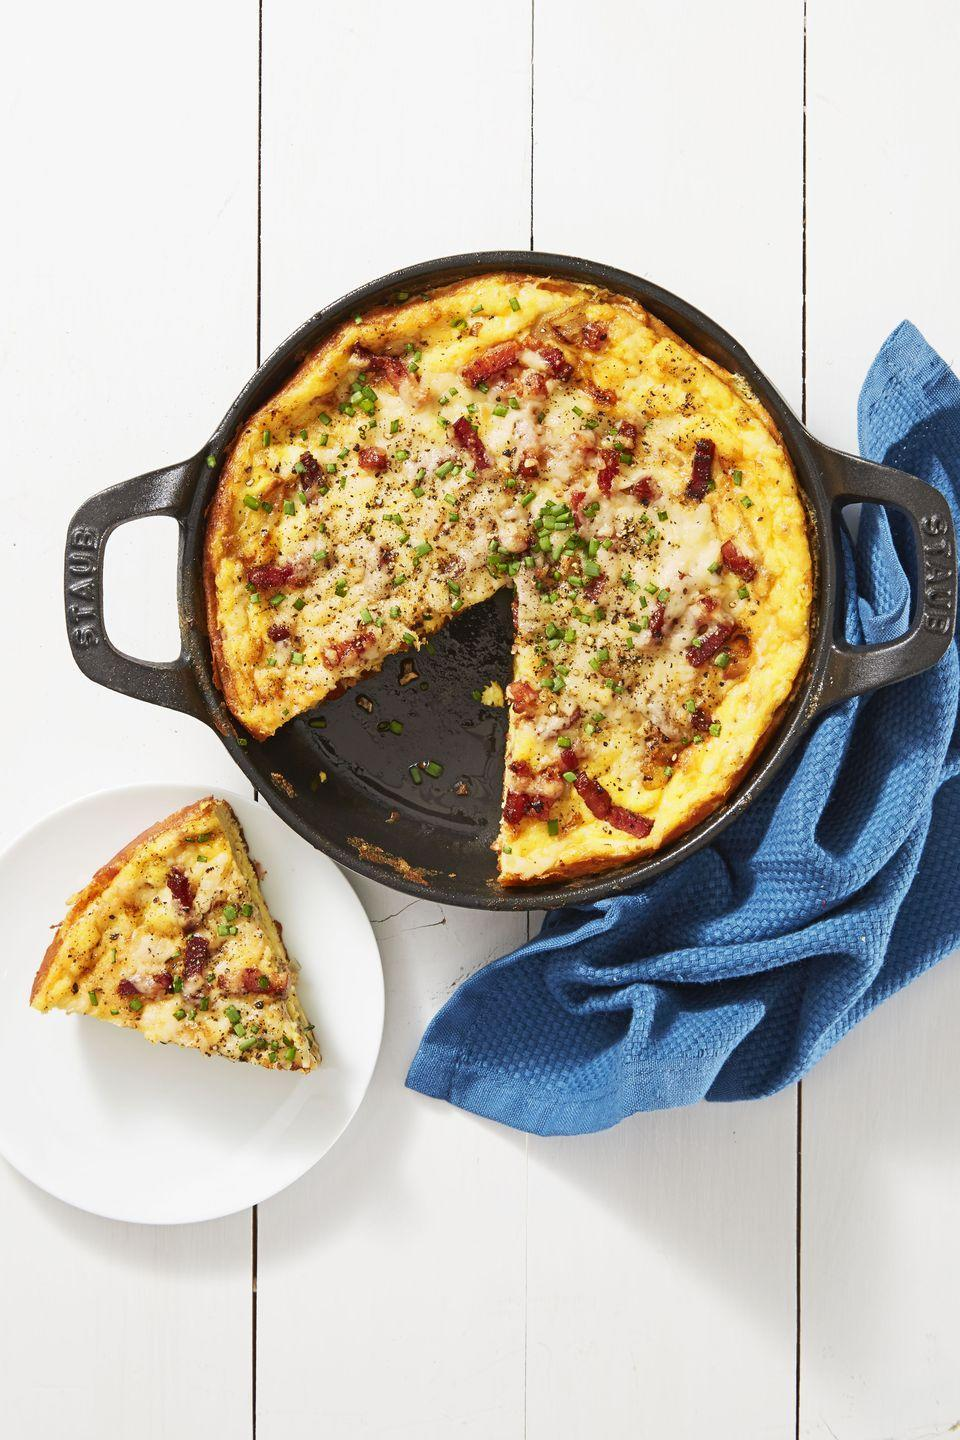 "<p>Ditch the crust and double the bacon for this BEC quiche. </p><p><em><em><a href=""https://www.goodhousekeeping.com/food-recipes/a39947/crustless-quiche-lorraine-recipe/"" rel=""nofollow noopener"" target=""_blank"" data-ylk=""slk:Get the recipe for Crustless Quiche Lorraine »"" class=""link rapid-noclick-resp"">Get the recipe for Crustless Quiche Lorraine »</a></em> </em></p>"